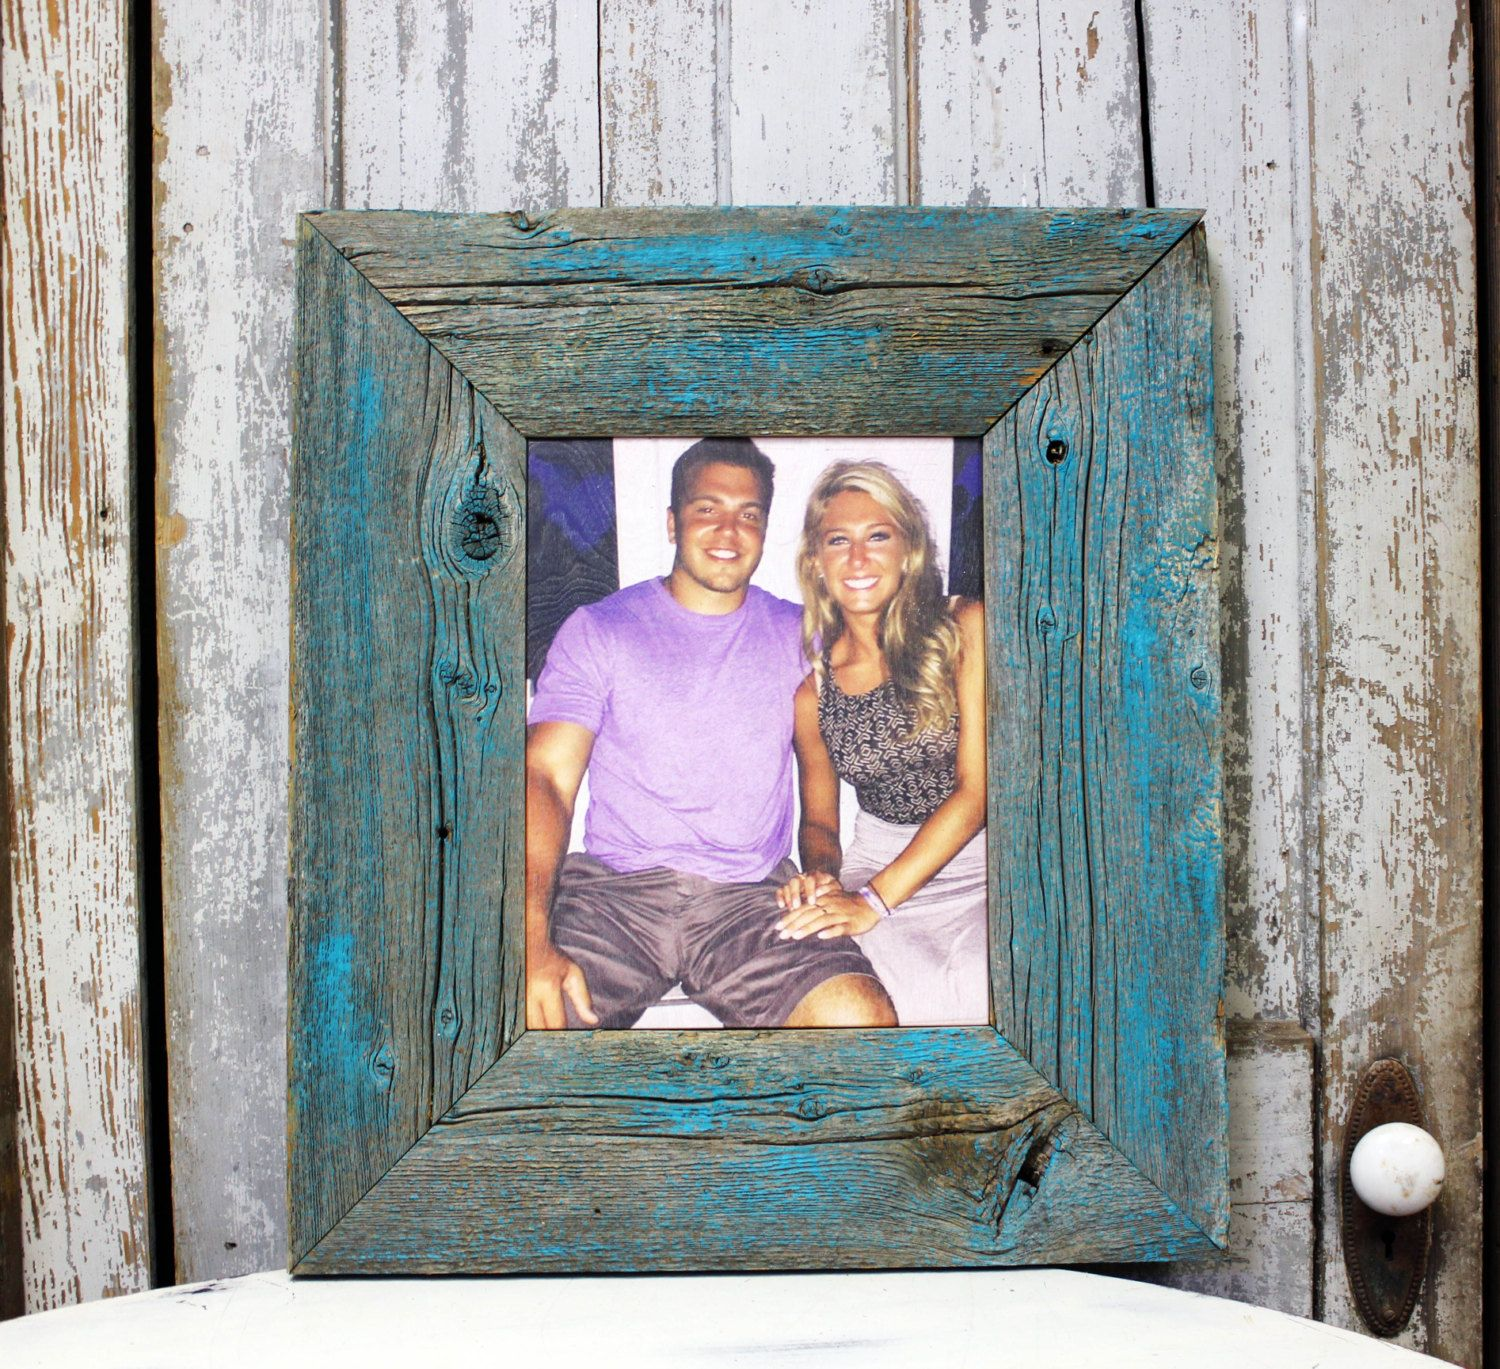 Photographs Printed on WOOD or METAL, Rustic barn wood